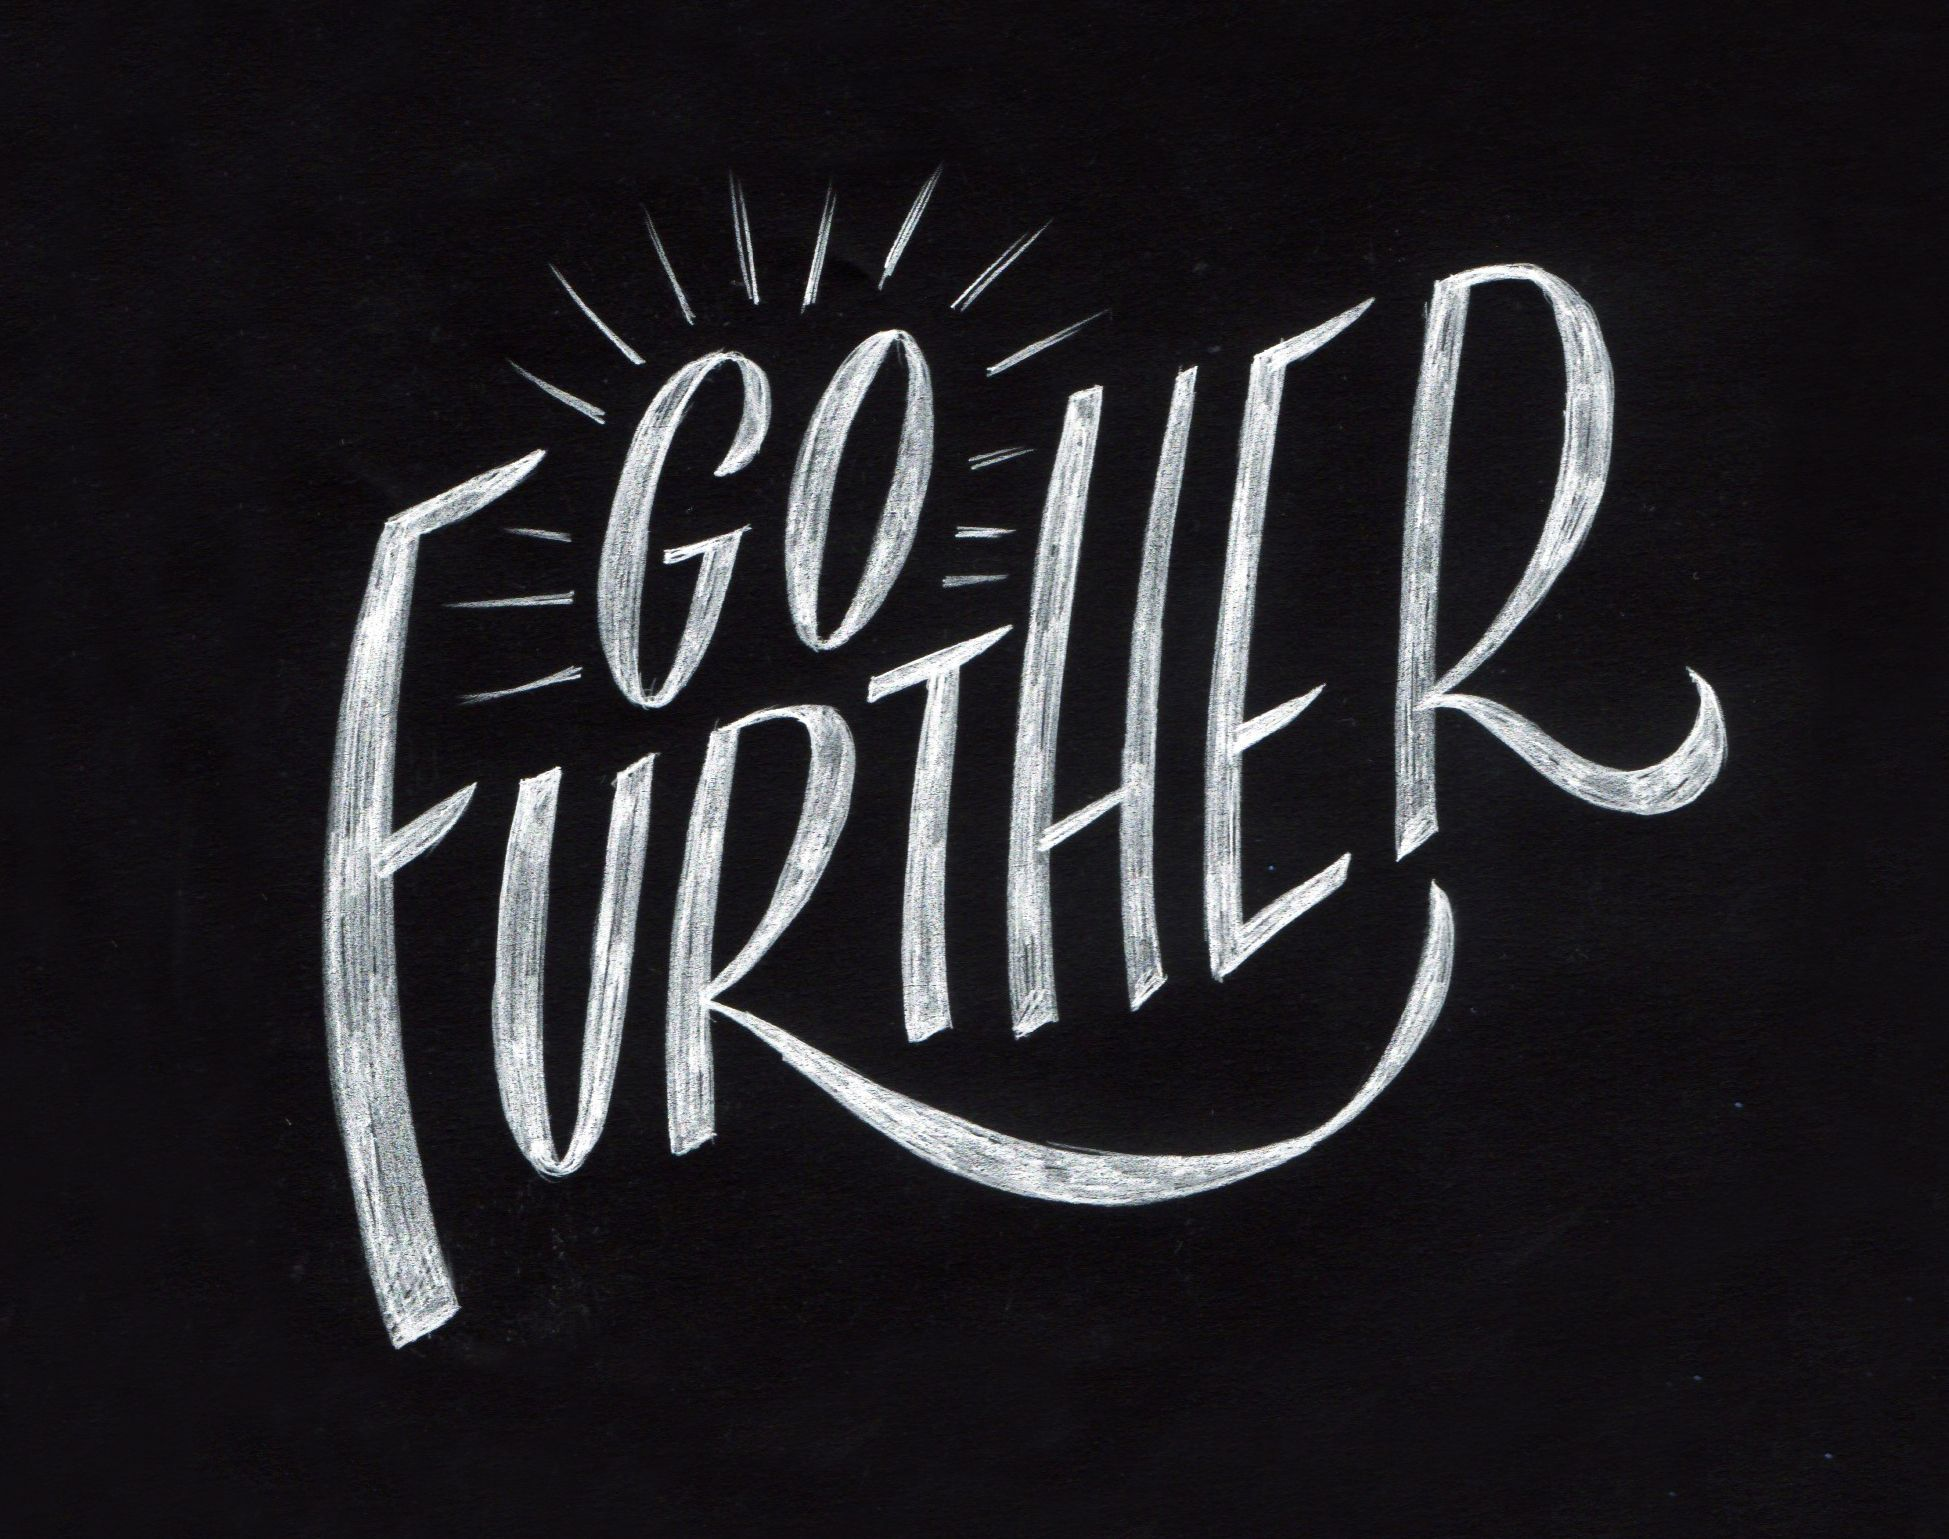 Molly Jacques Workshop • TUTORIAL: The Easiest Digital Chalk Lettering